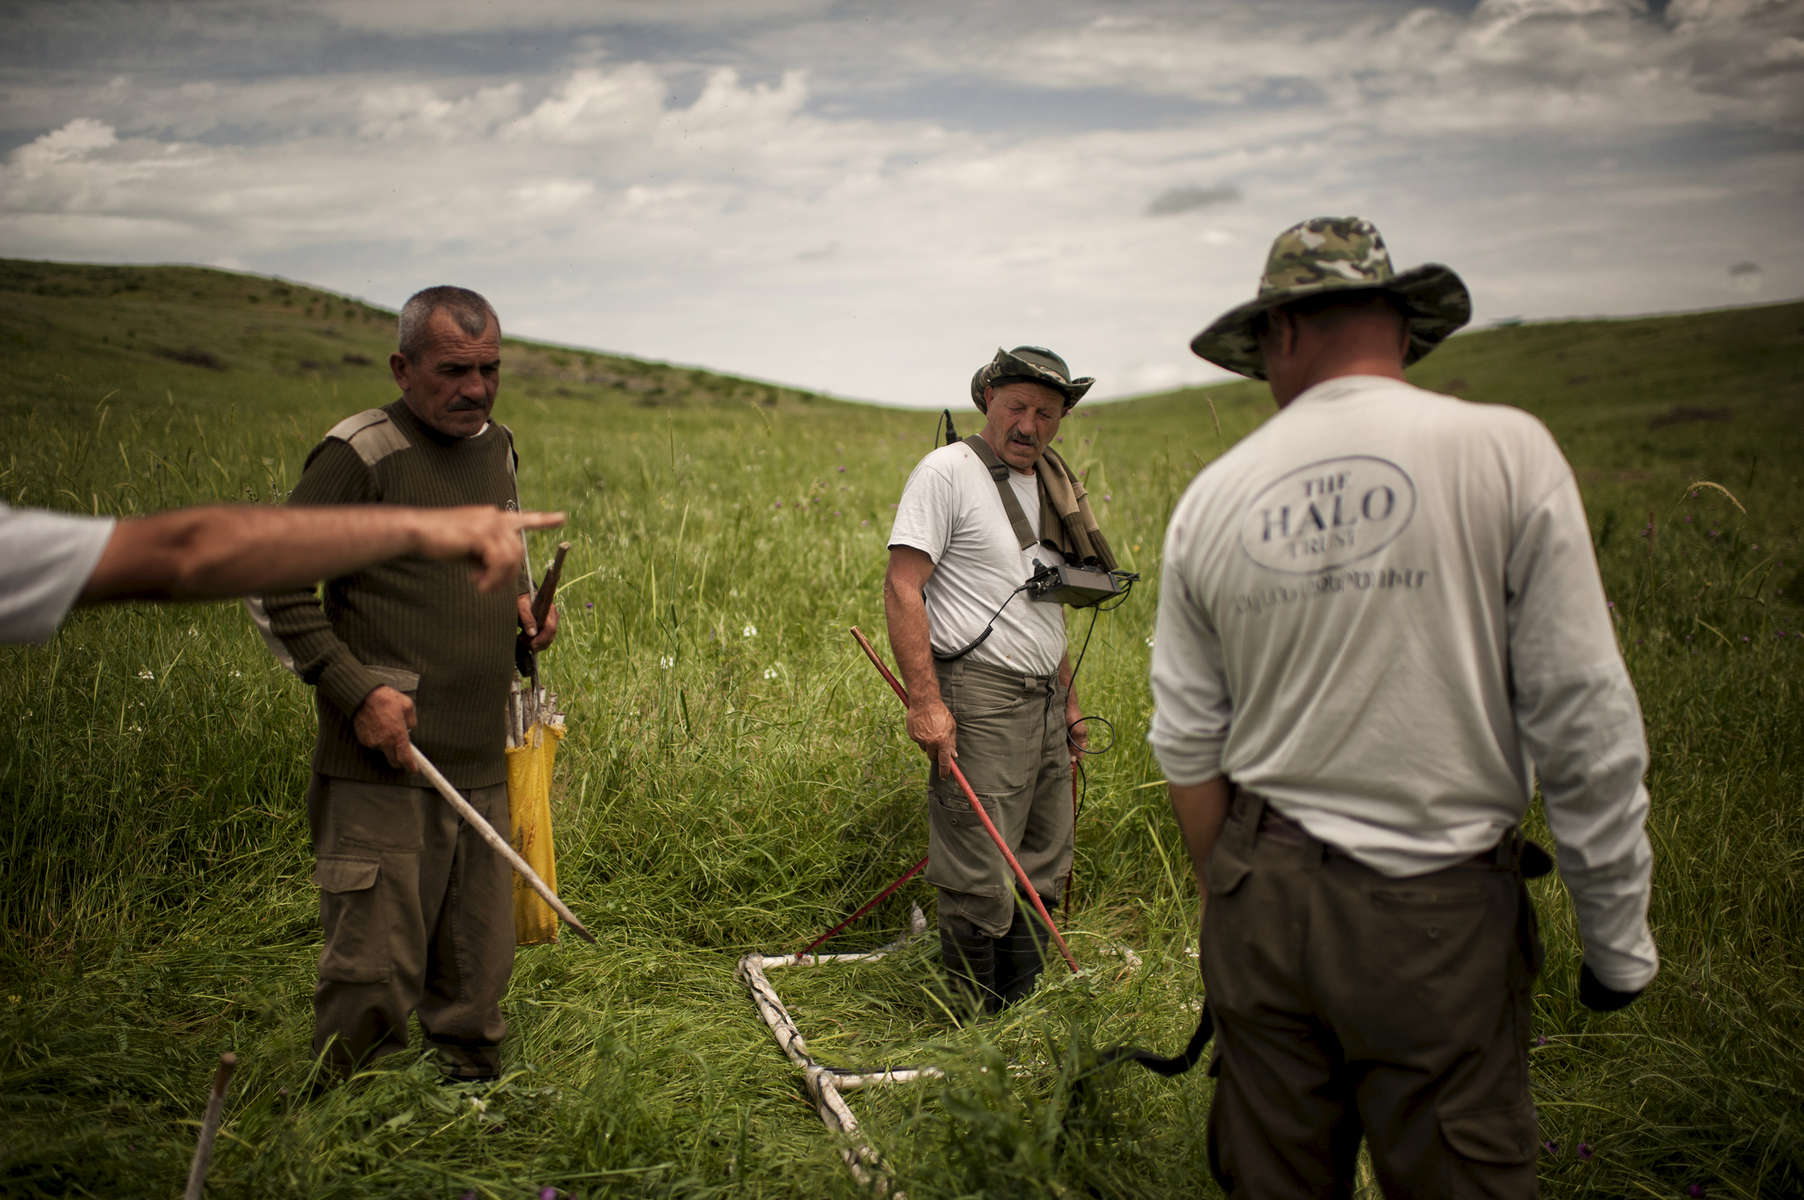 HALO  deminers work to clear an anti-tank minefield near Govshatly village in the Hadrut region. DEFINERS HAVE BEEN INTERVIEWED. NAMES AND PULL QUOTES TK NEXT WEEK